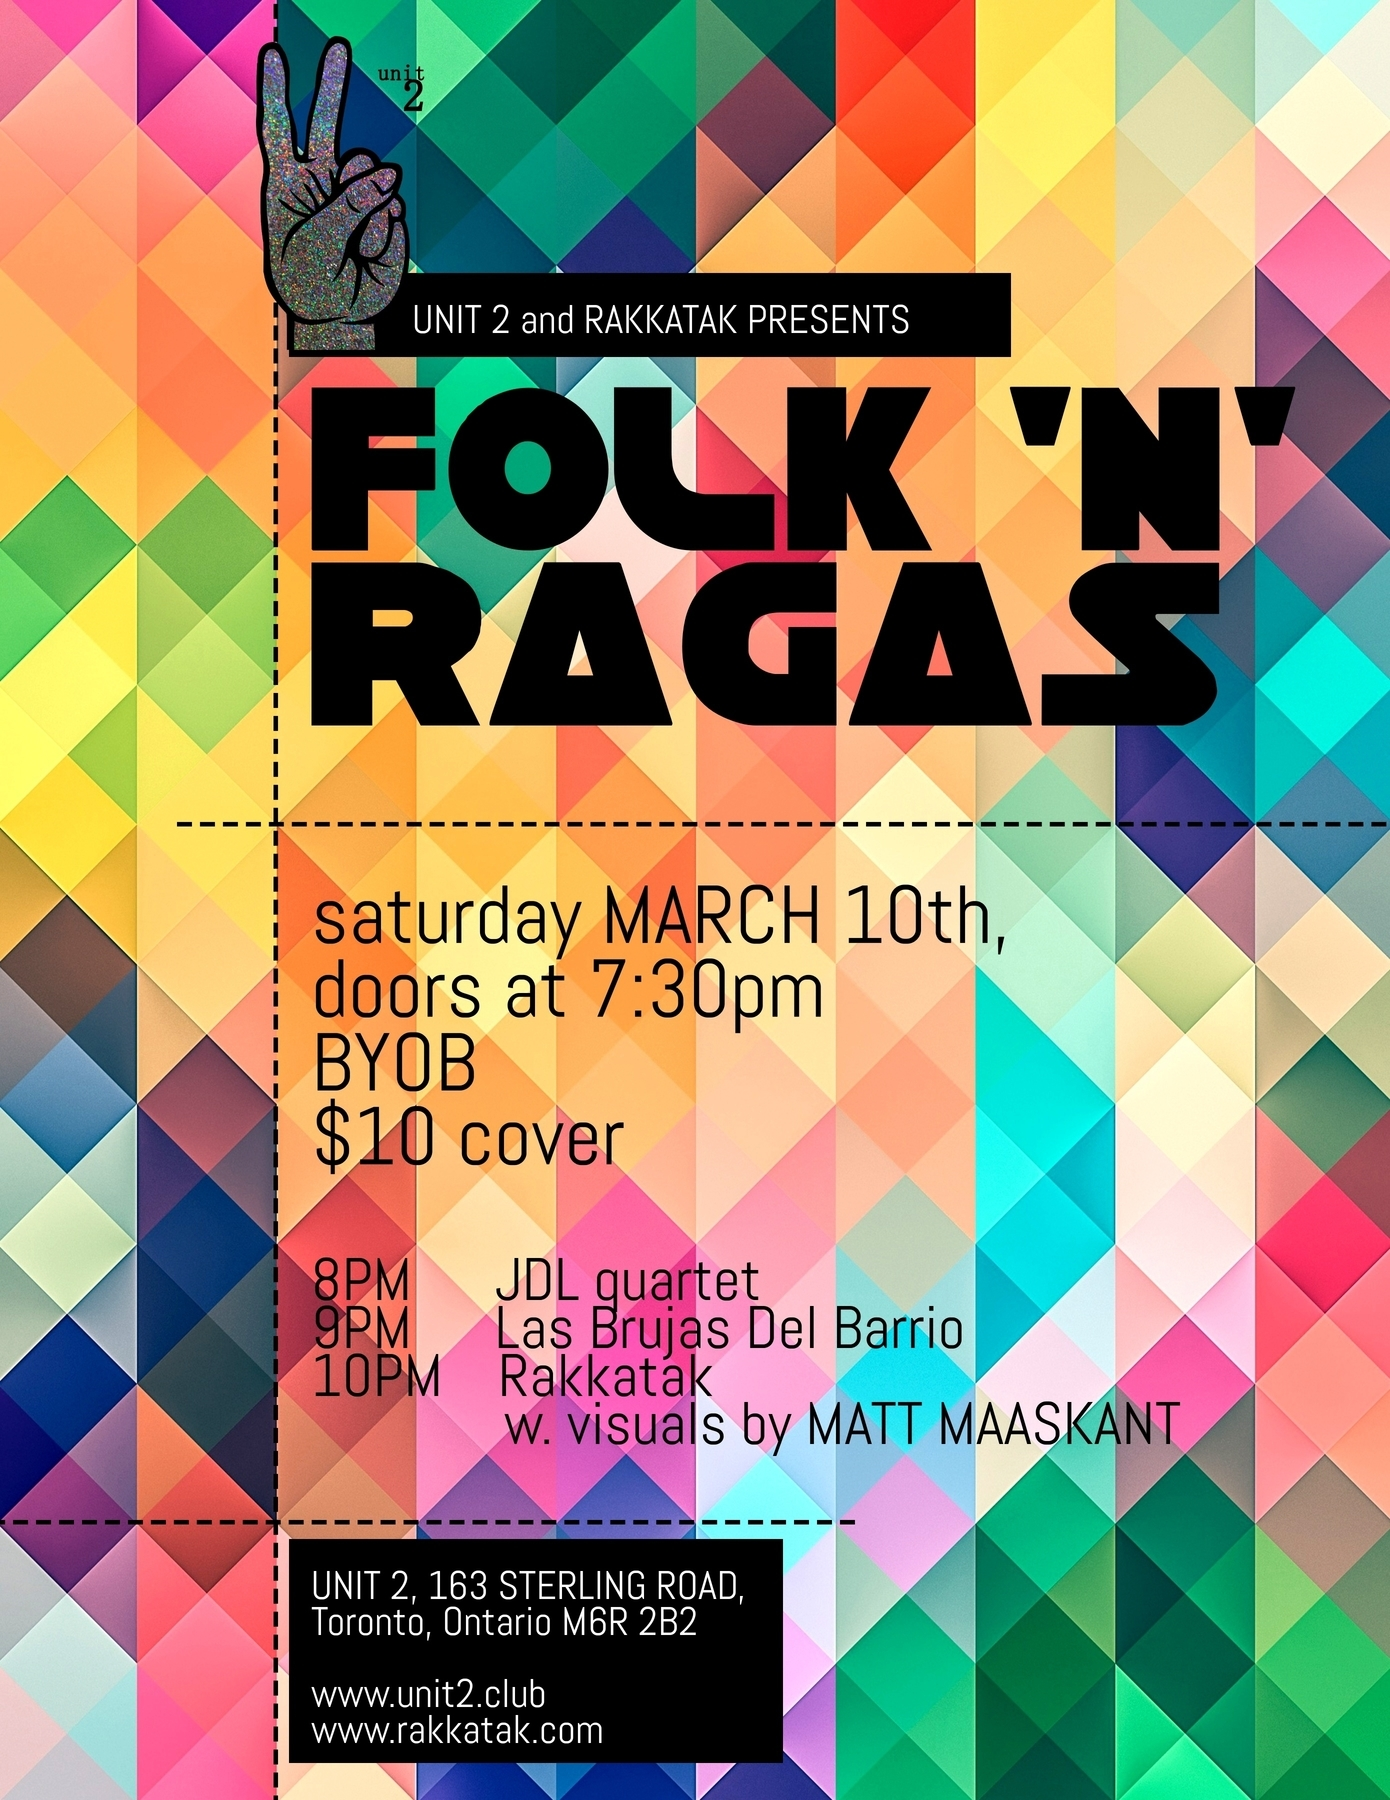 folk_n_ragas_unit2_mar102018_final